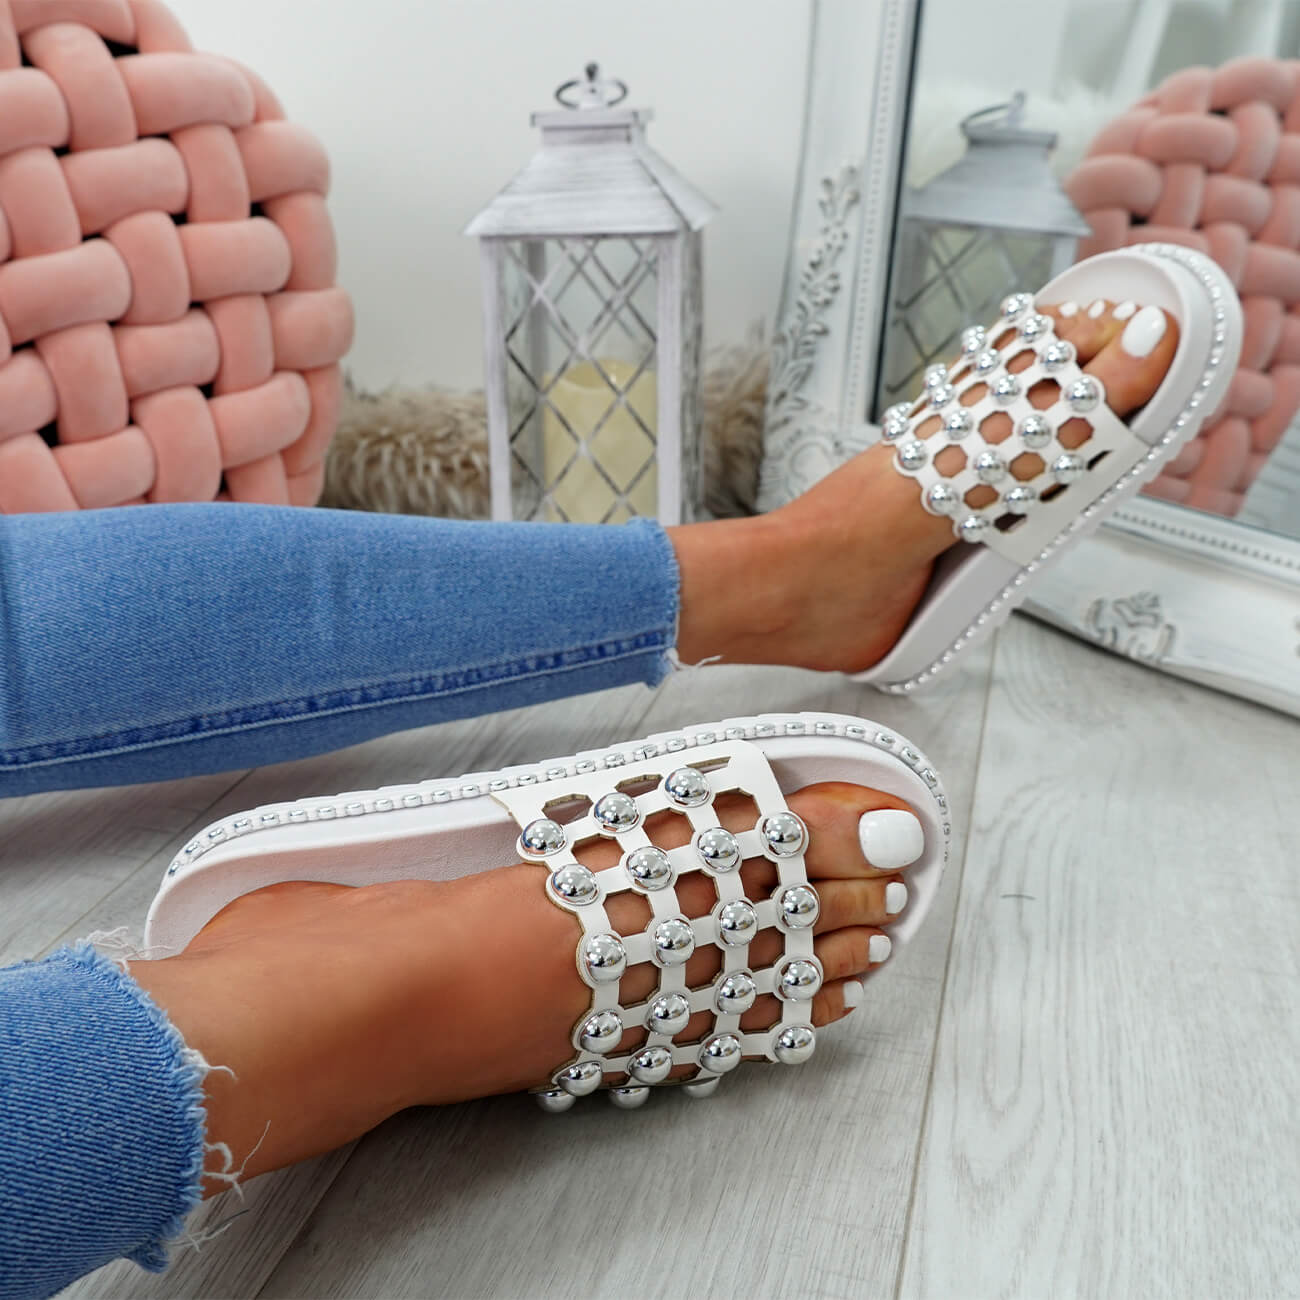 WOMENS-LADIES-PEARL-STUDDED-SLIP-ON-FLAT-SANDALS-HEELS-FLIP-FLOP-SHOES-SIZE thumbnail 25